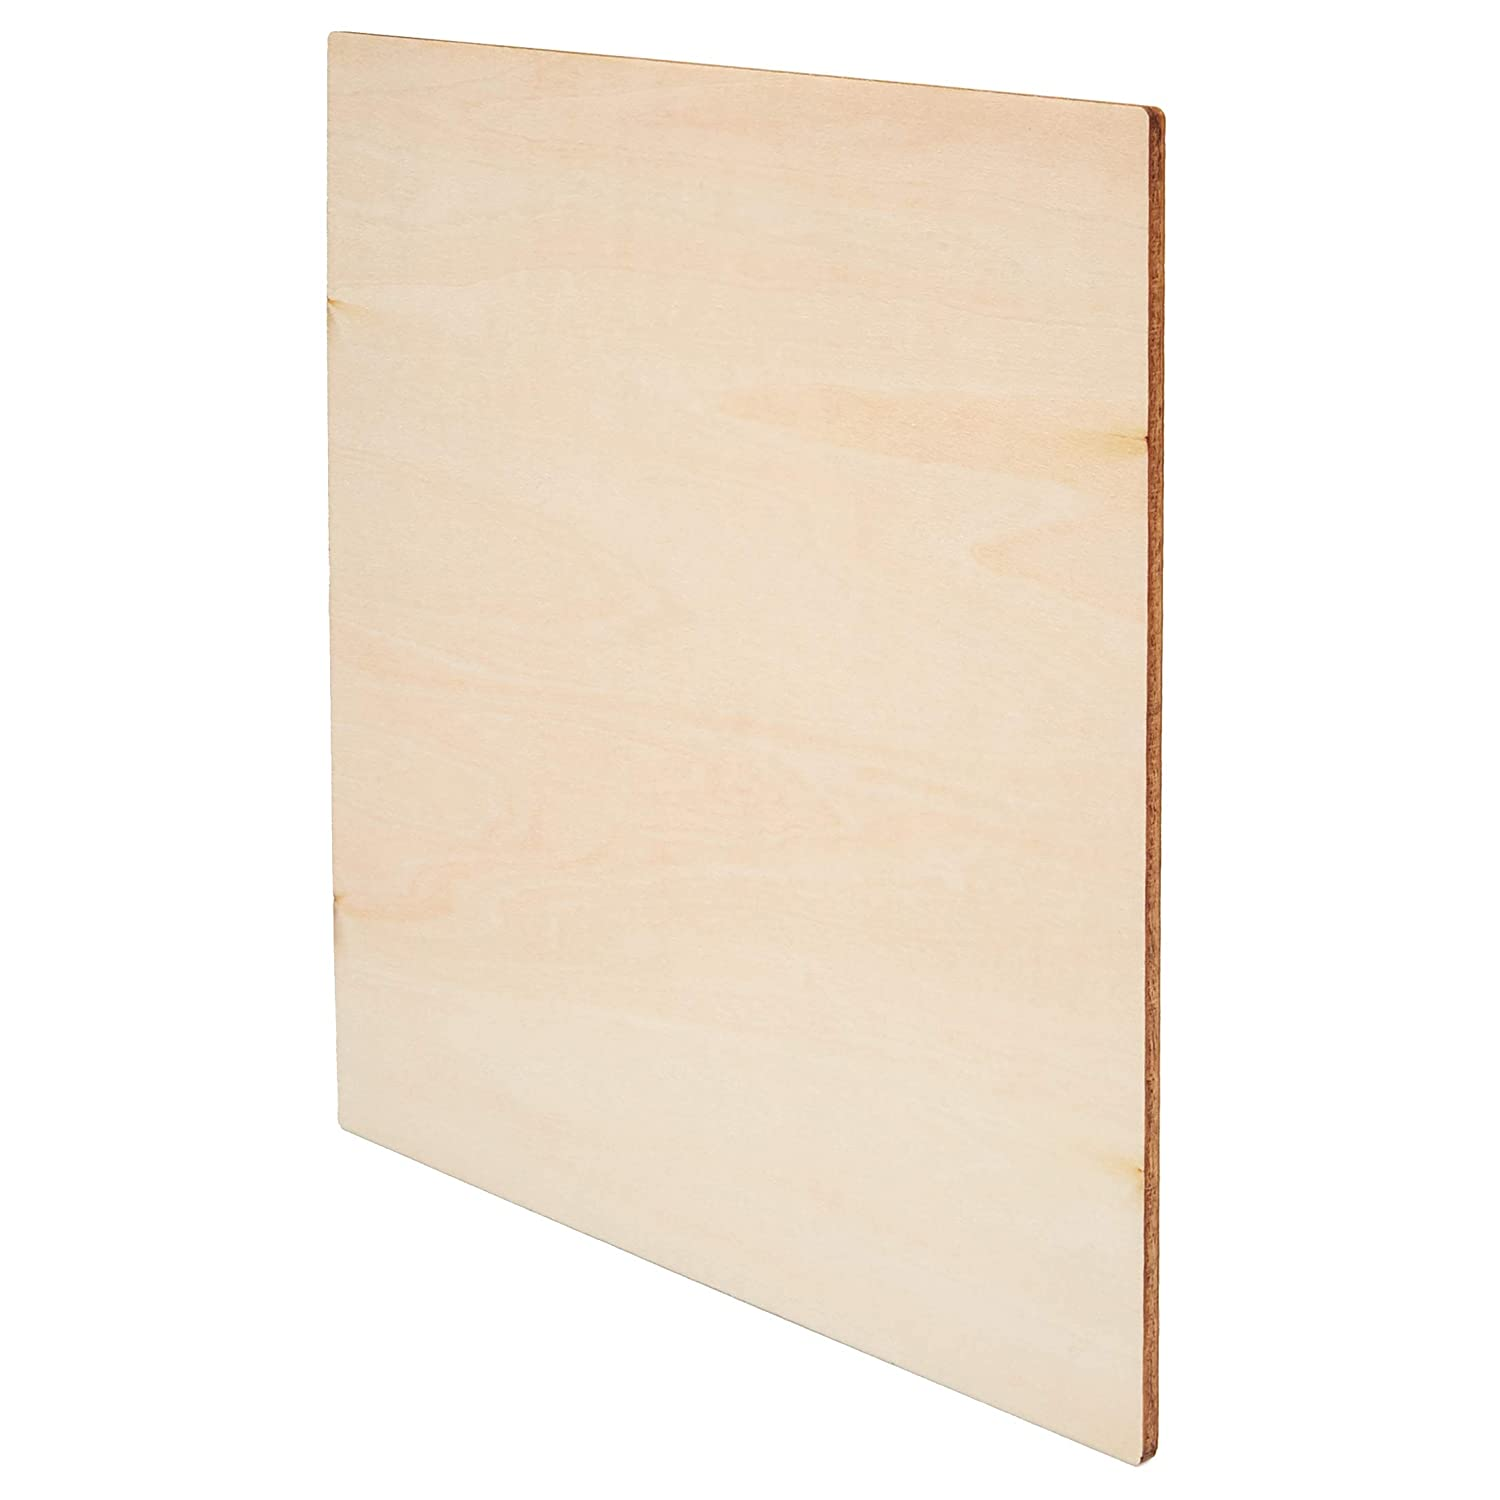 Bright Creations 8-Pack Square Basswood Plywood Thin Sheets for Wood Burning 8 Inches